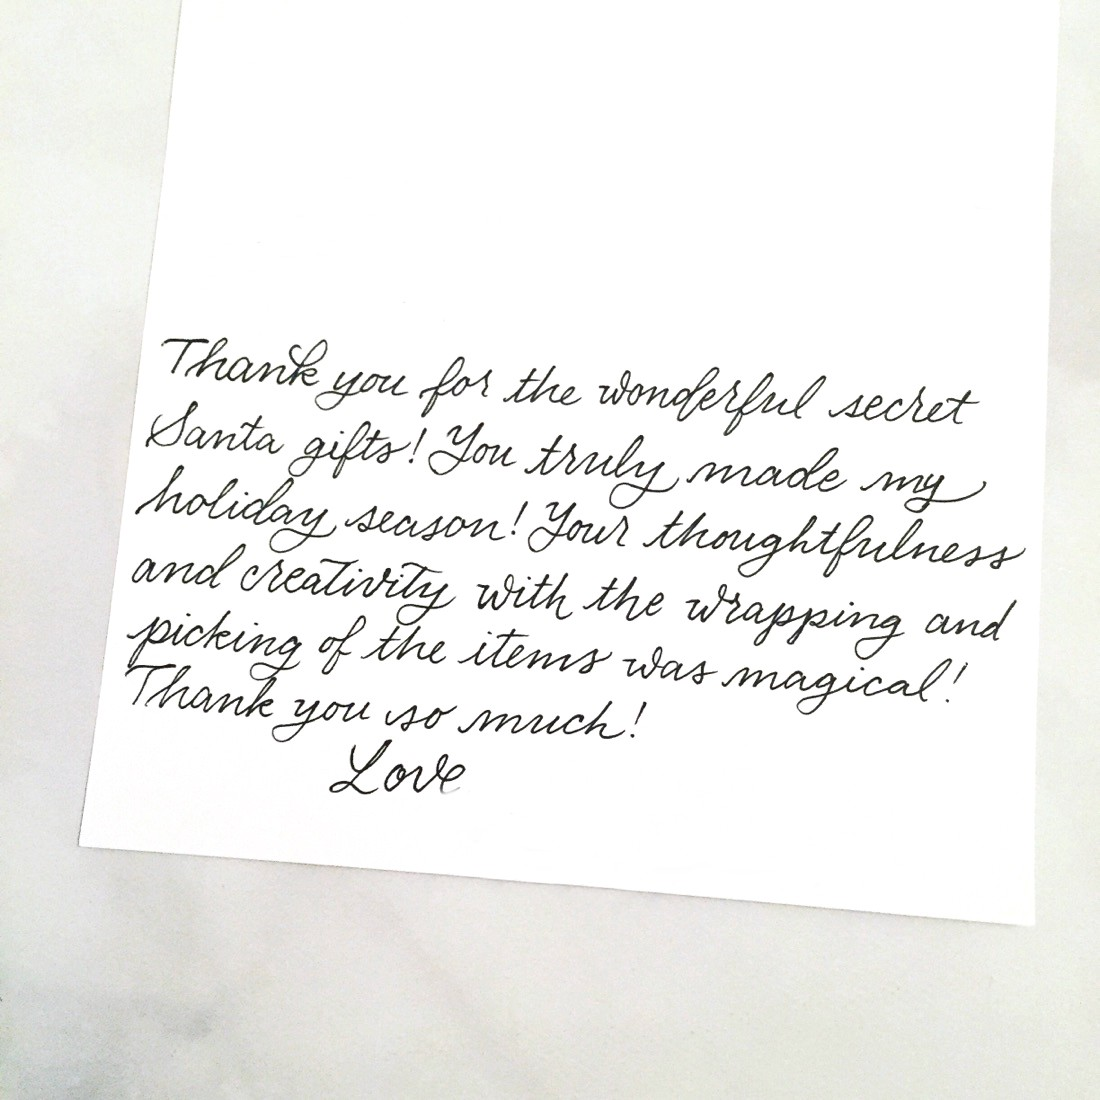 Sample Christmas Letters To Family And Friends.What To Write In Your Holiday Thank You Cards Punkpost